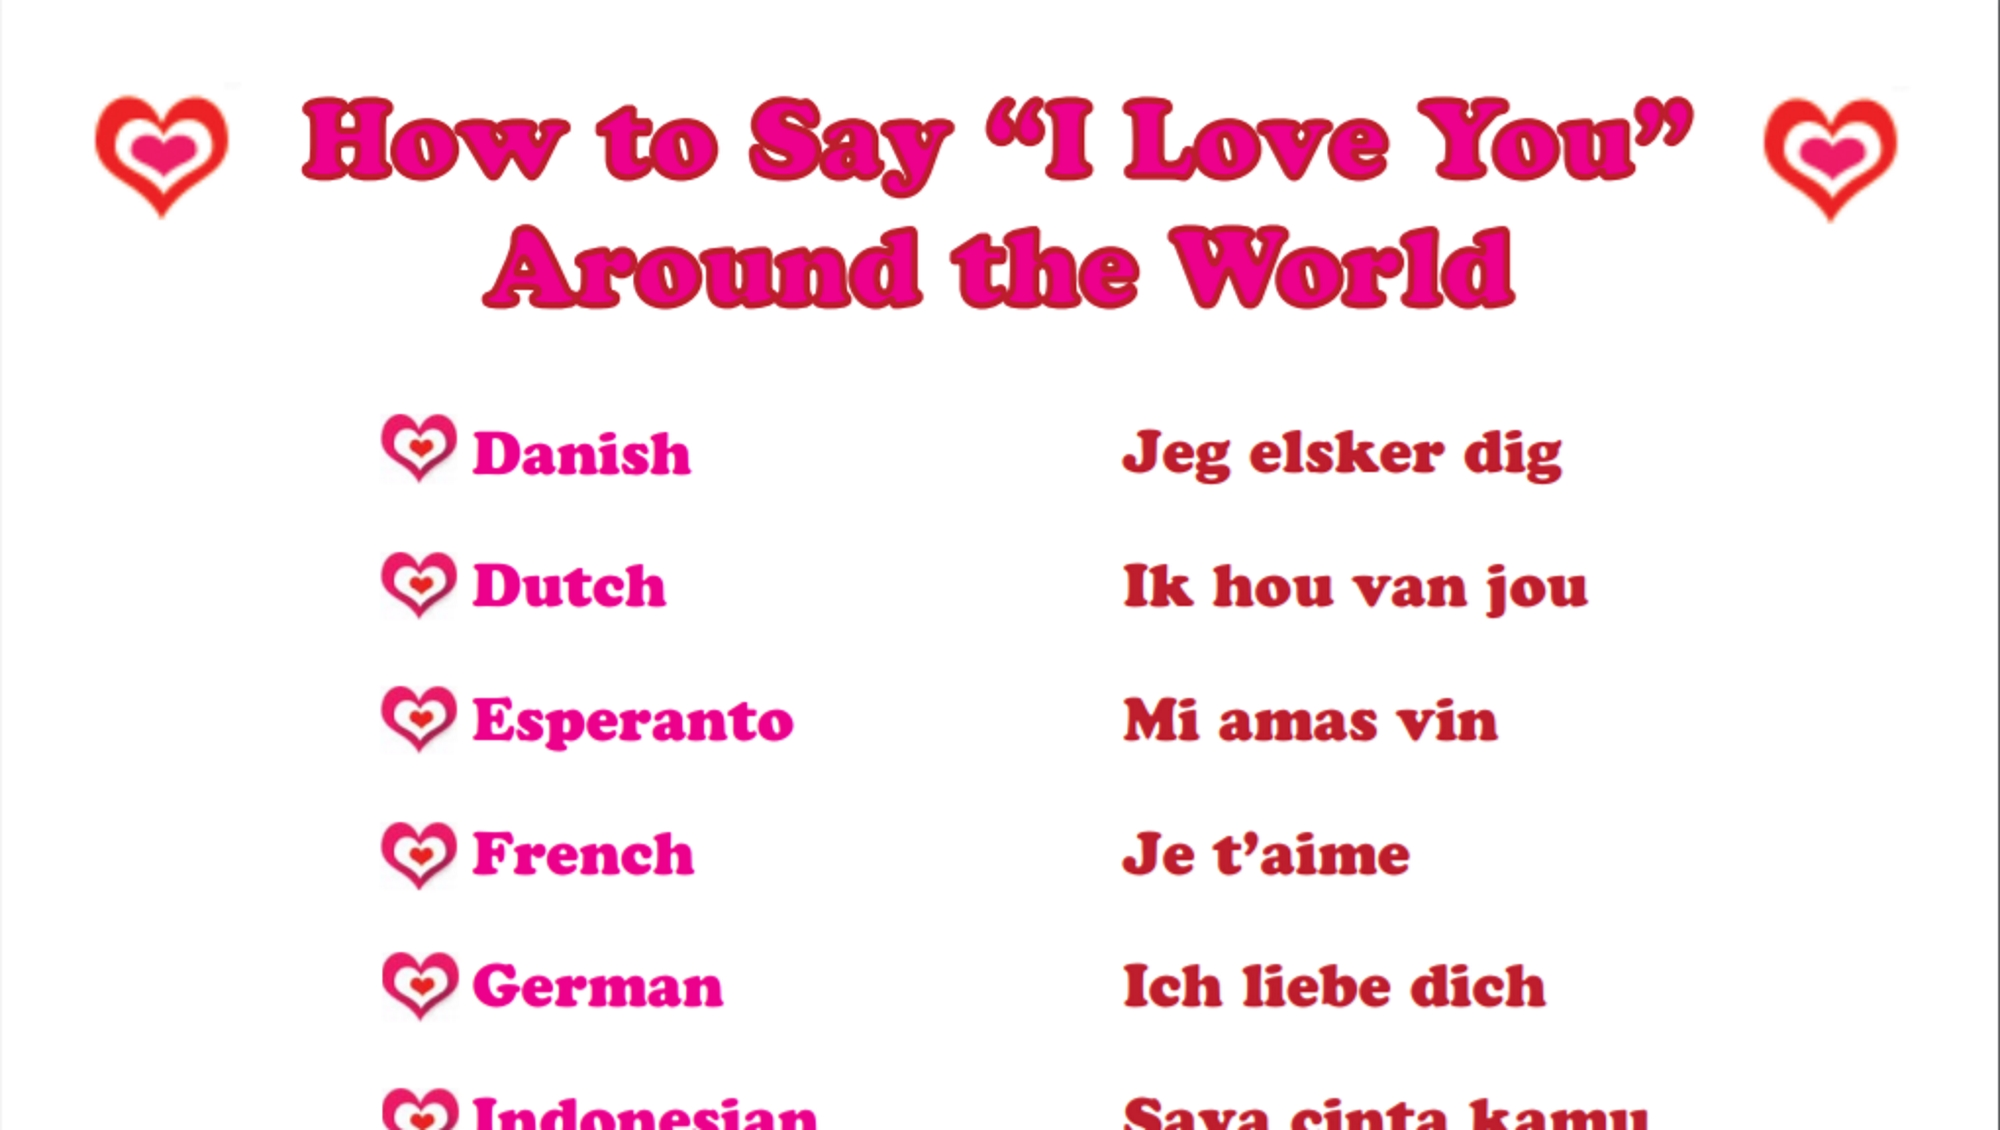 How To Say I Love You In Many Languages